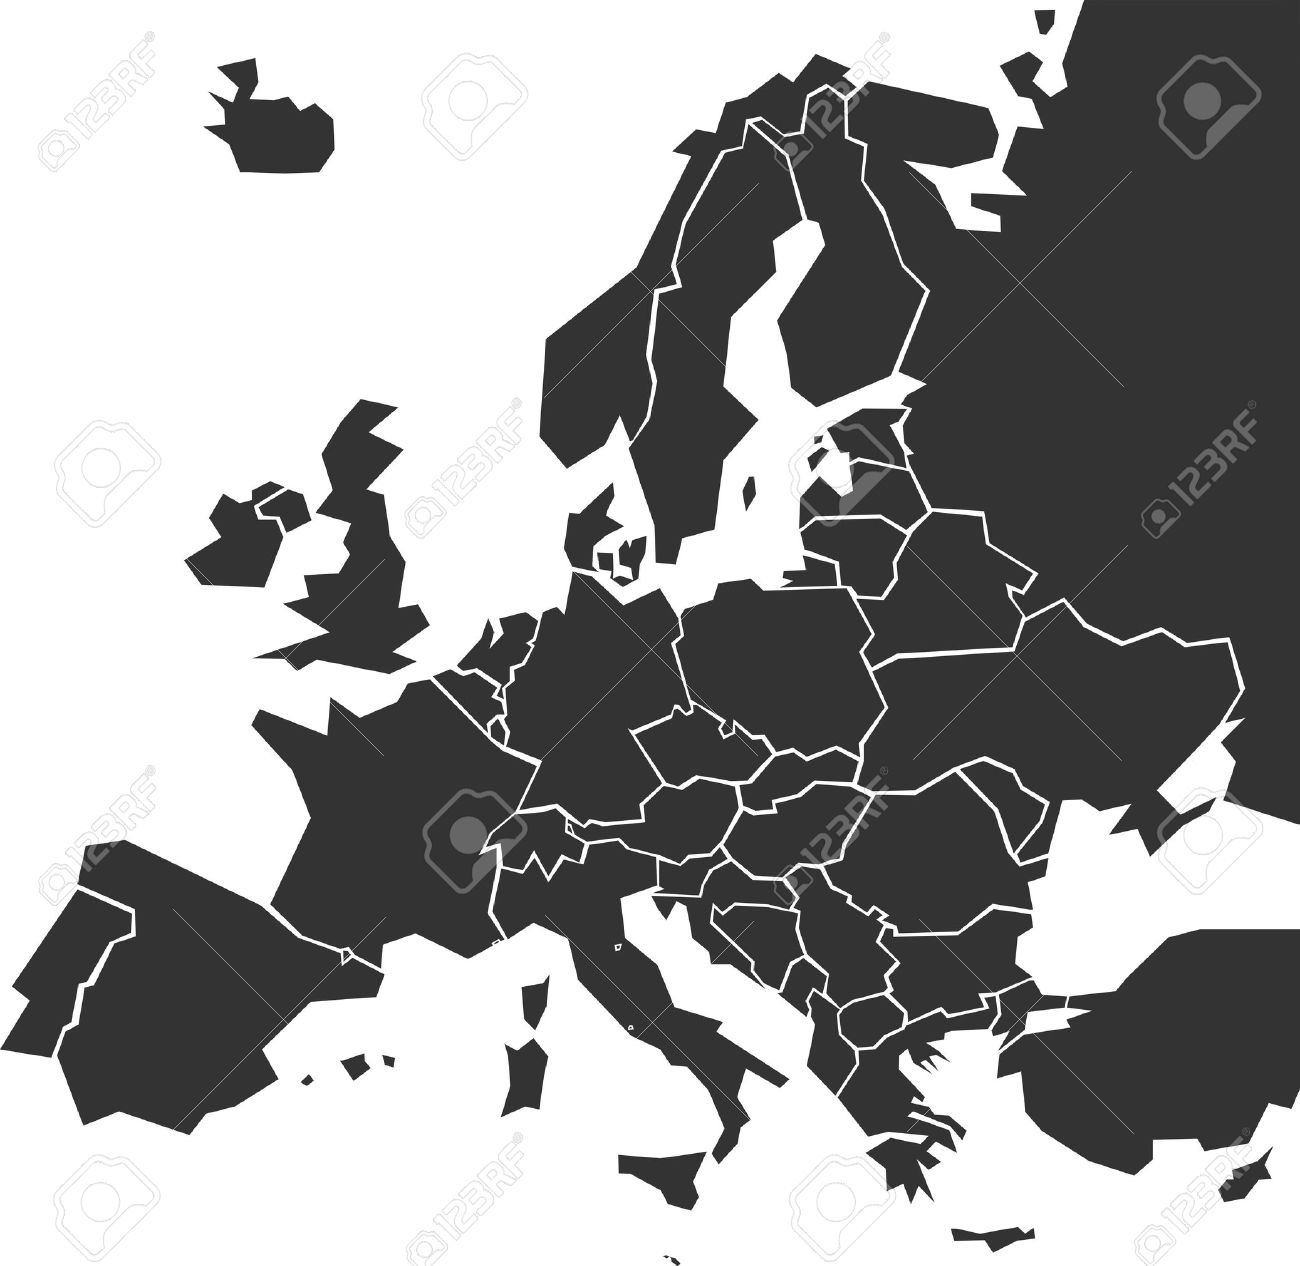 carte europe simplifiee